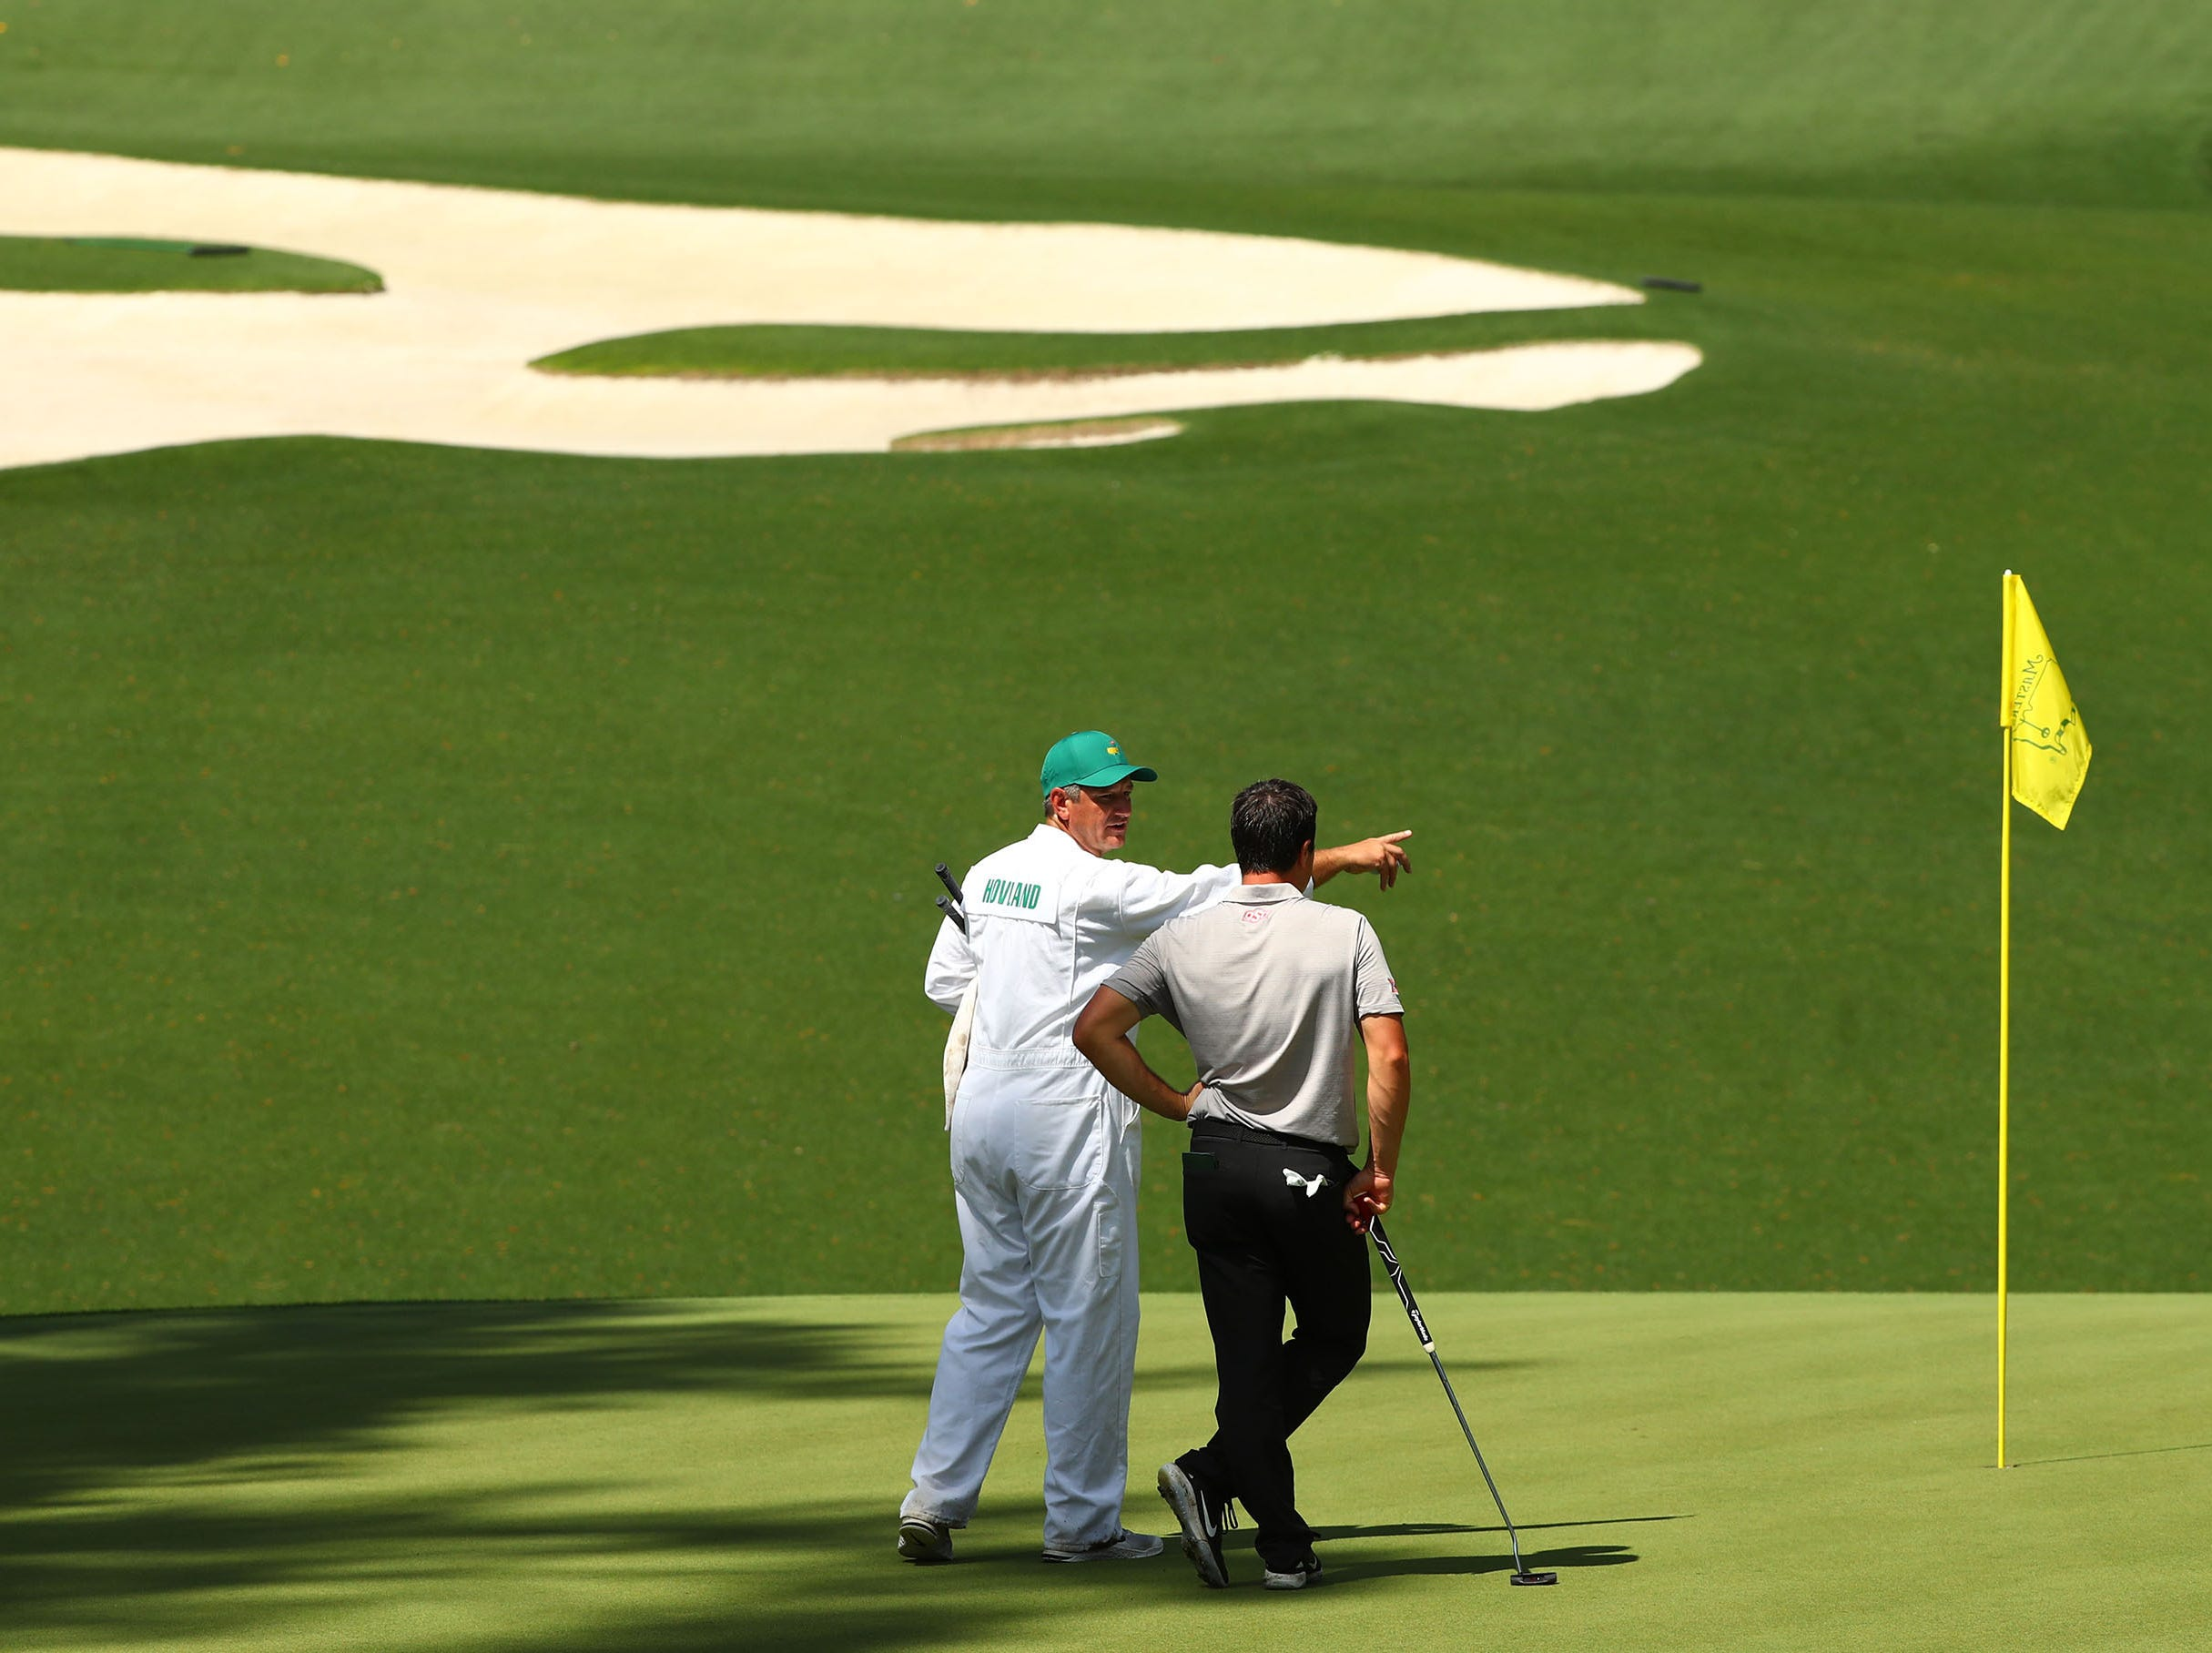 Apr 9, 2019; Augusta, GA, USA; Viktor Hovland and caddie Alan Bratton survey the 10th hole during a practice round for The Masters golf tournament at Augusta National Golf Club. Mandatory Credit: Rob Schumacher-USA TODAY Sports